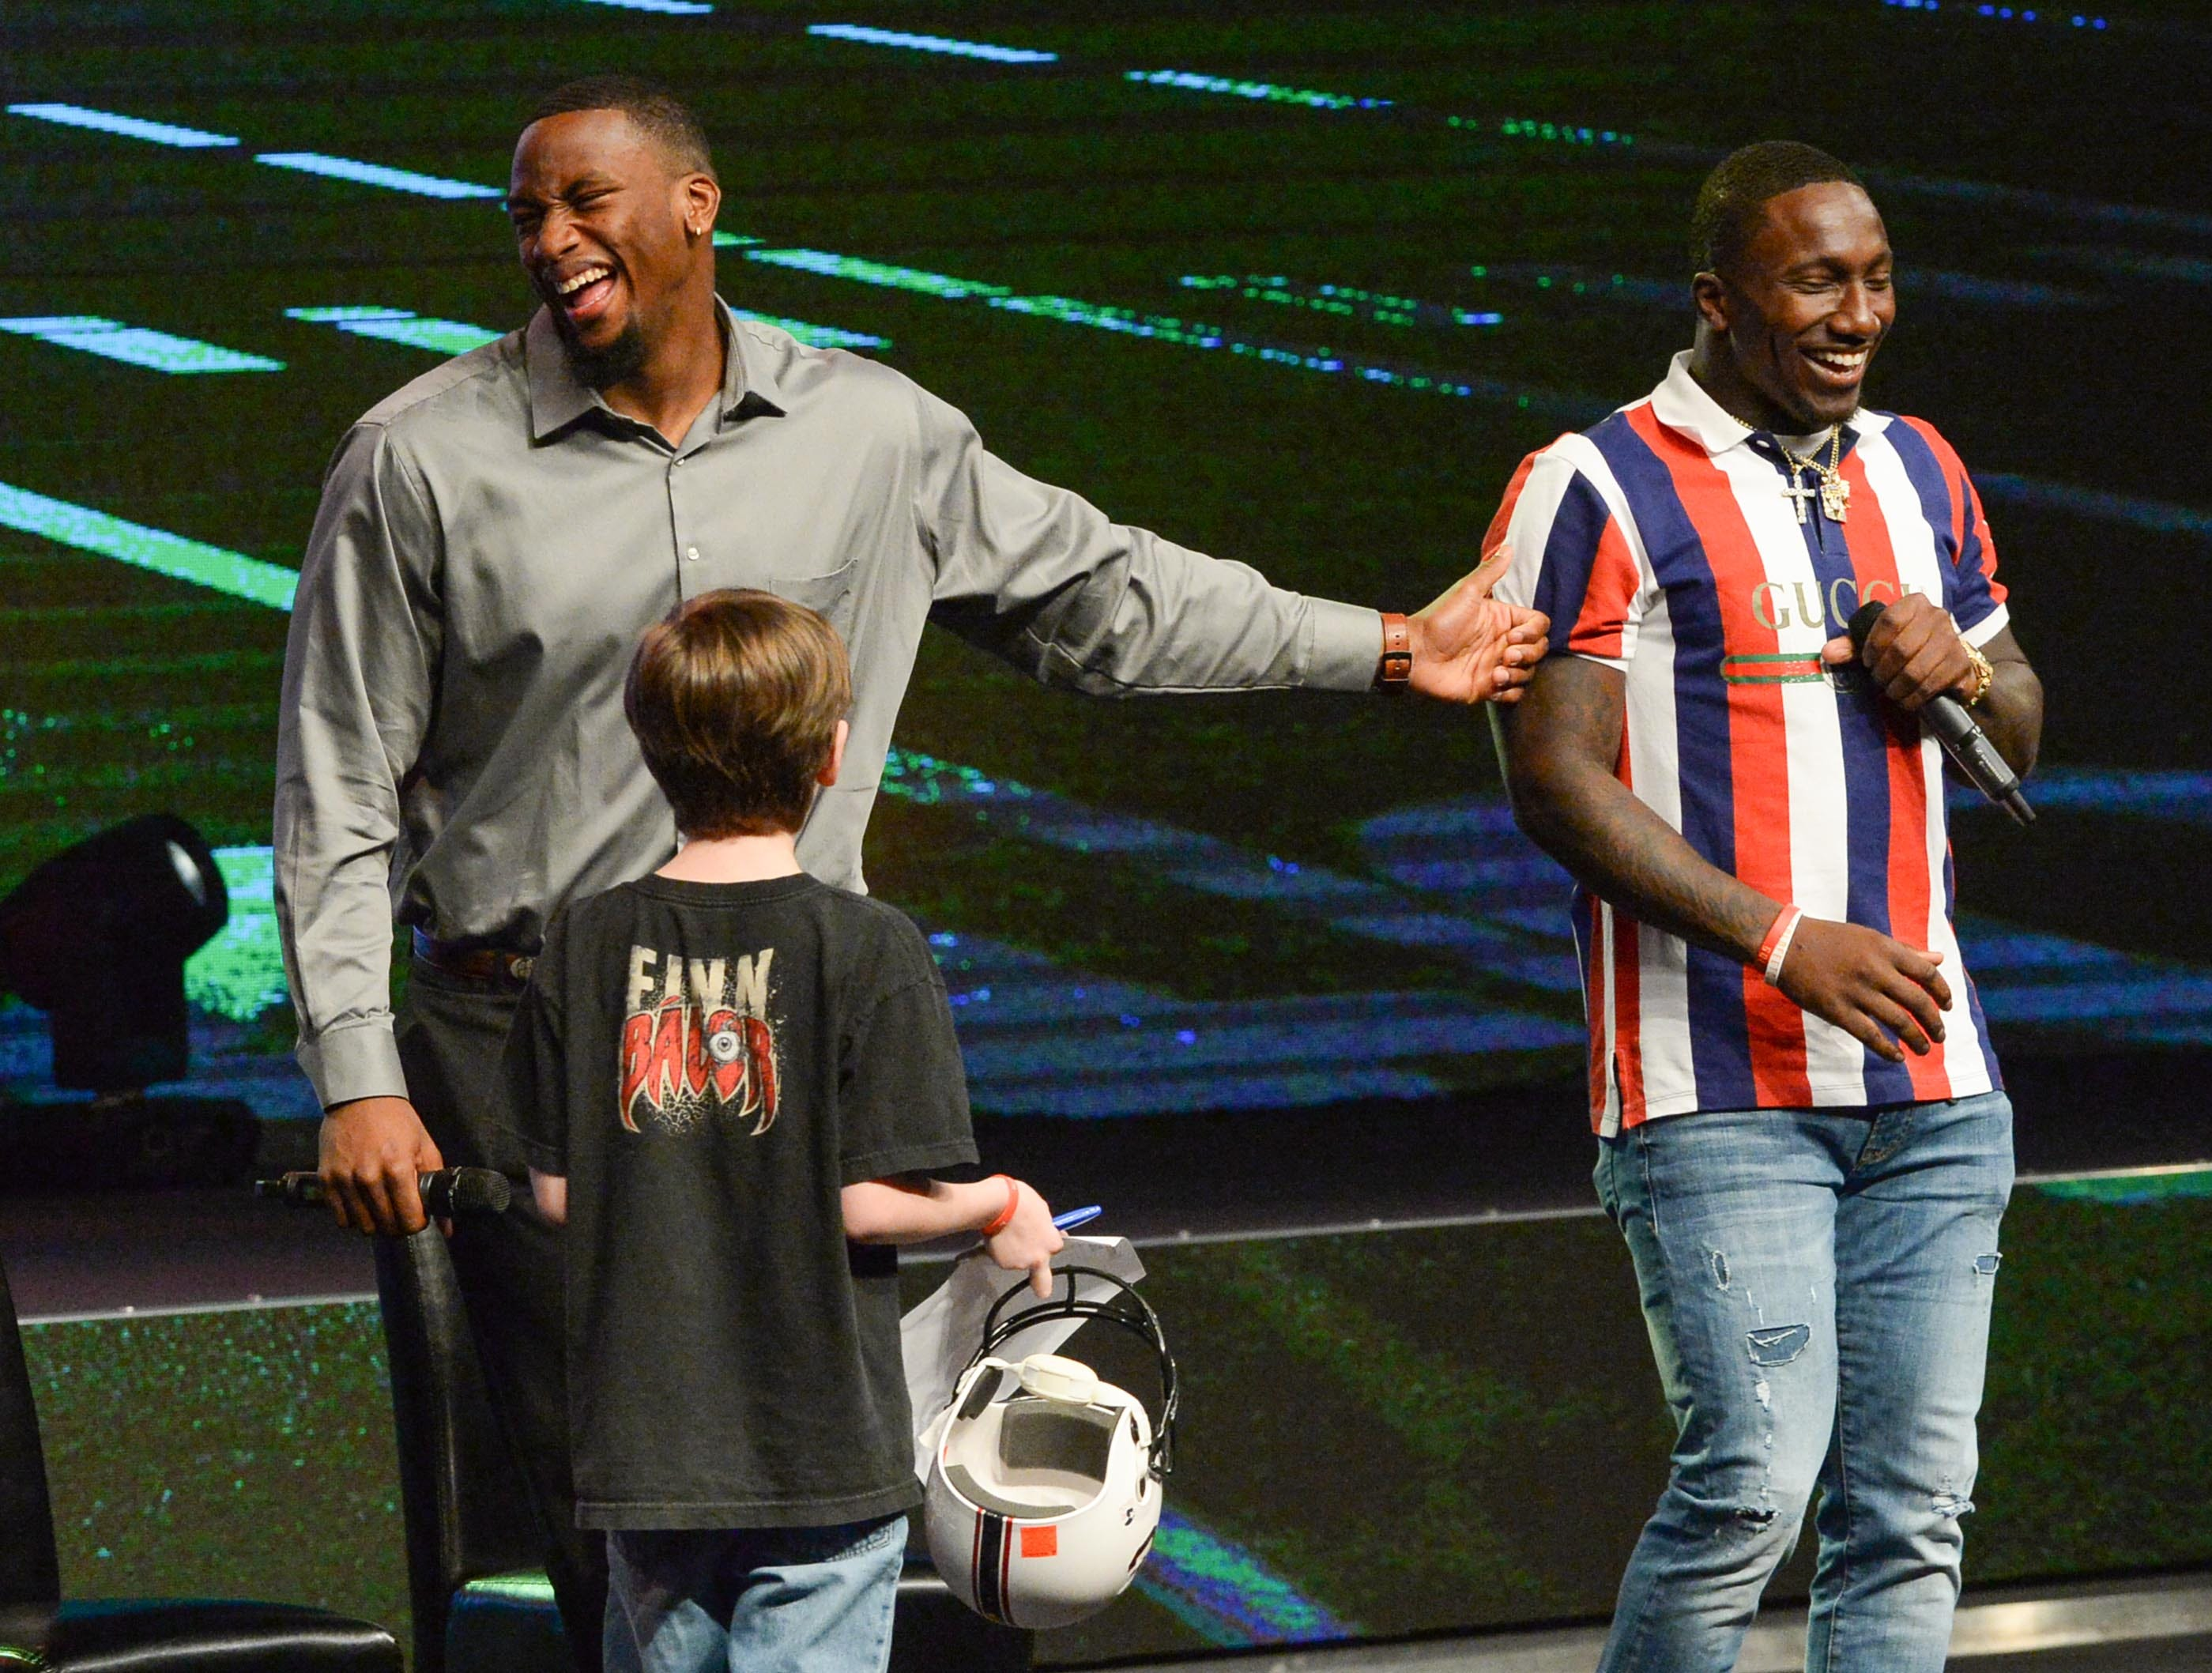 """Former Clemson Tiger Clelin Ferrell, left, and Deebo Samuel, right, South Carolina Gamecock football player, share a laugh after answering a question from Gene Johnson ask a question during the Coaches 4 Character event at Relentless Church in Greenville Tuesday. """"Put it in the bank,"""" both said."""